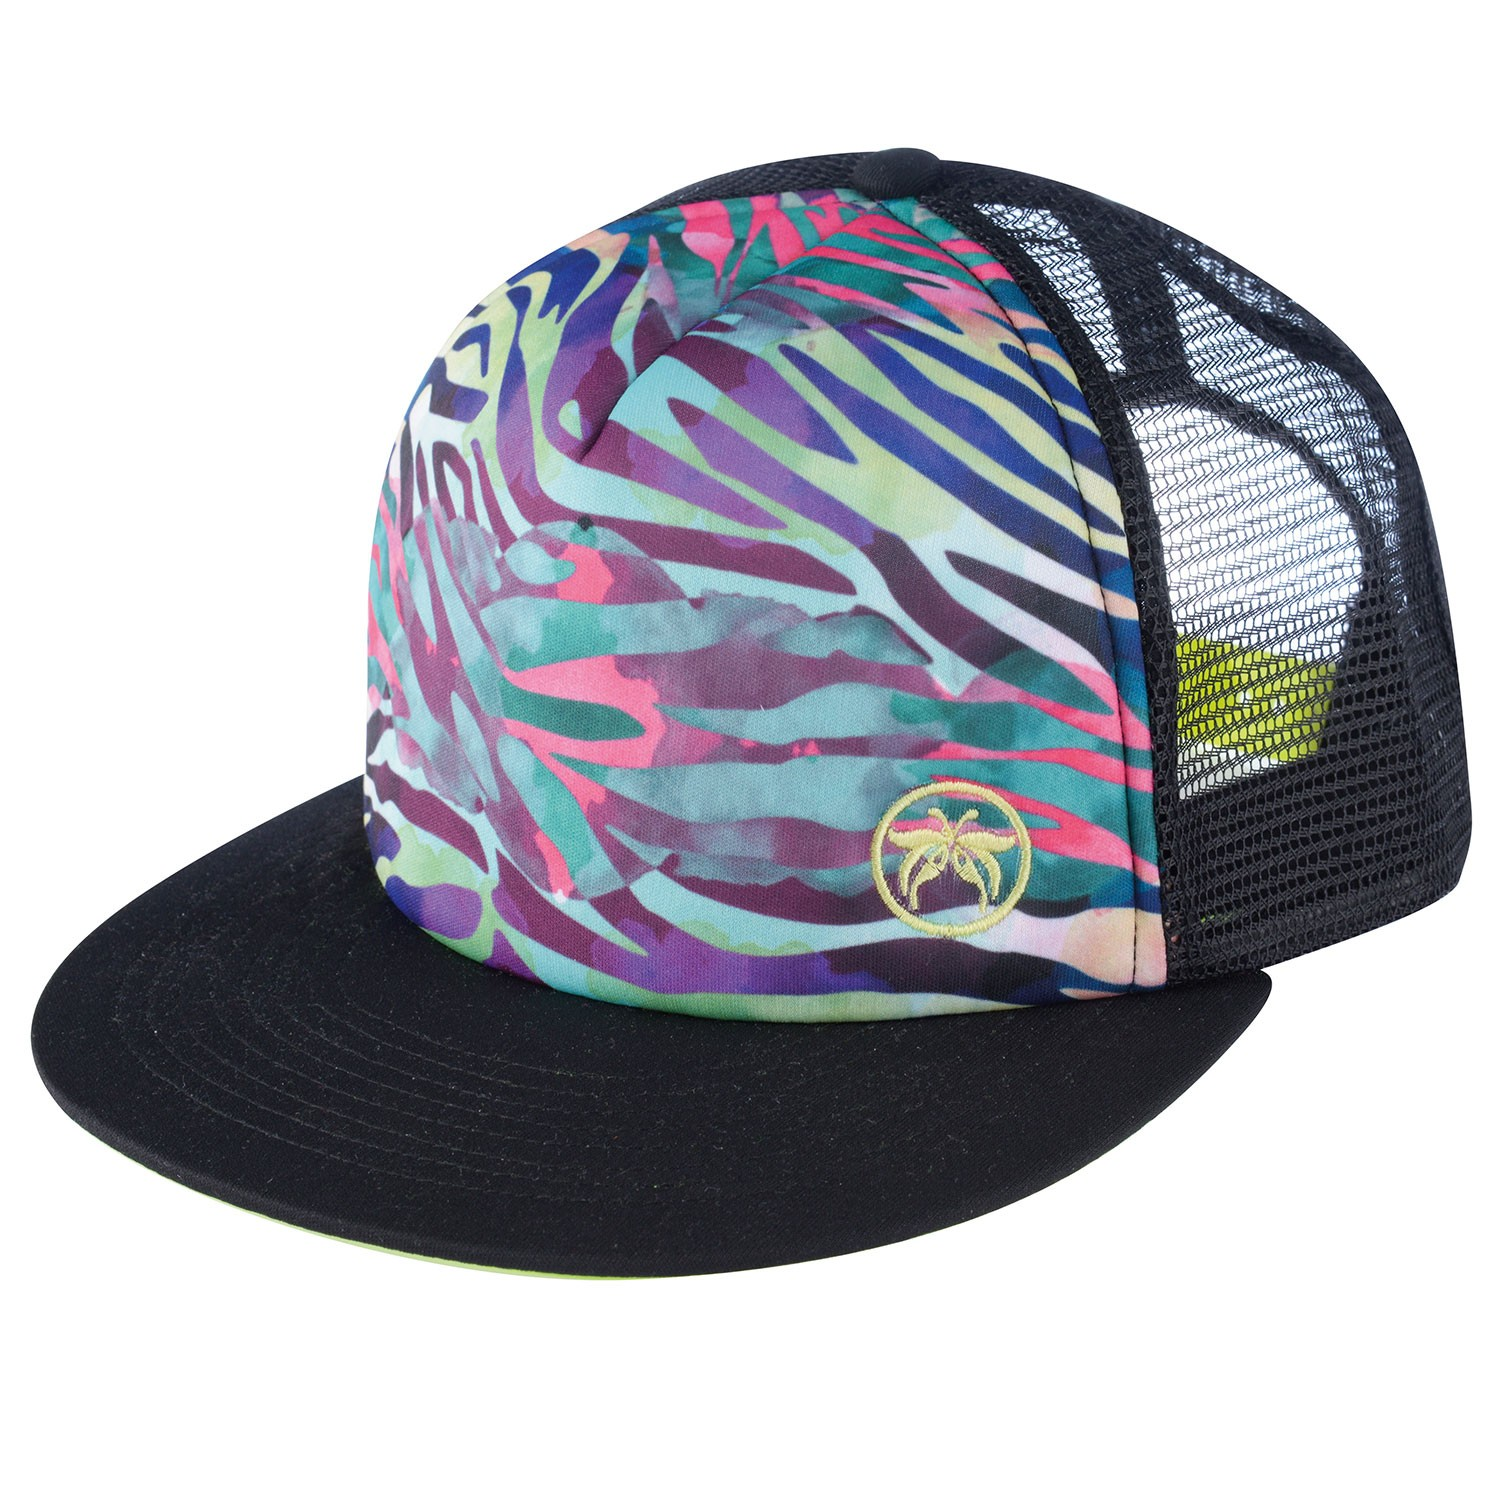 Animal Print Snapback Trucker Hat Nikki- Free Delivery Over £20 - Urban  Beach 4460d9eb146